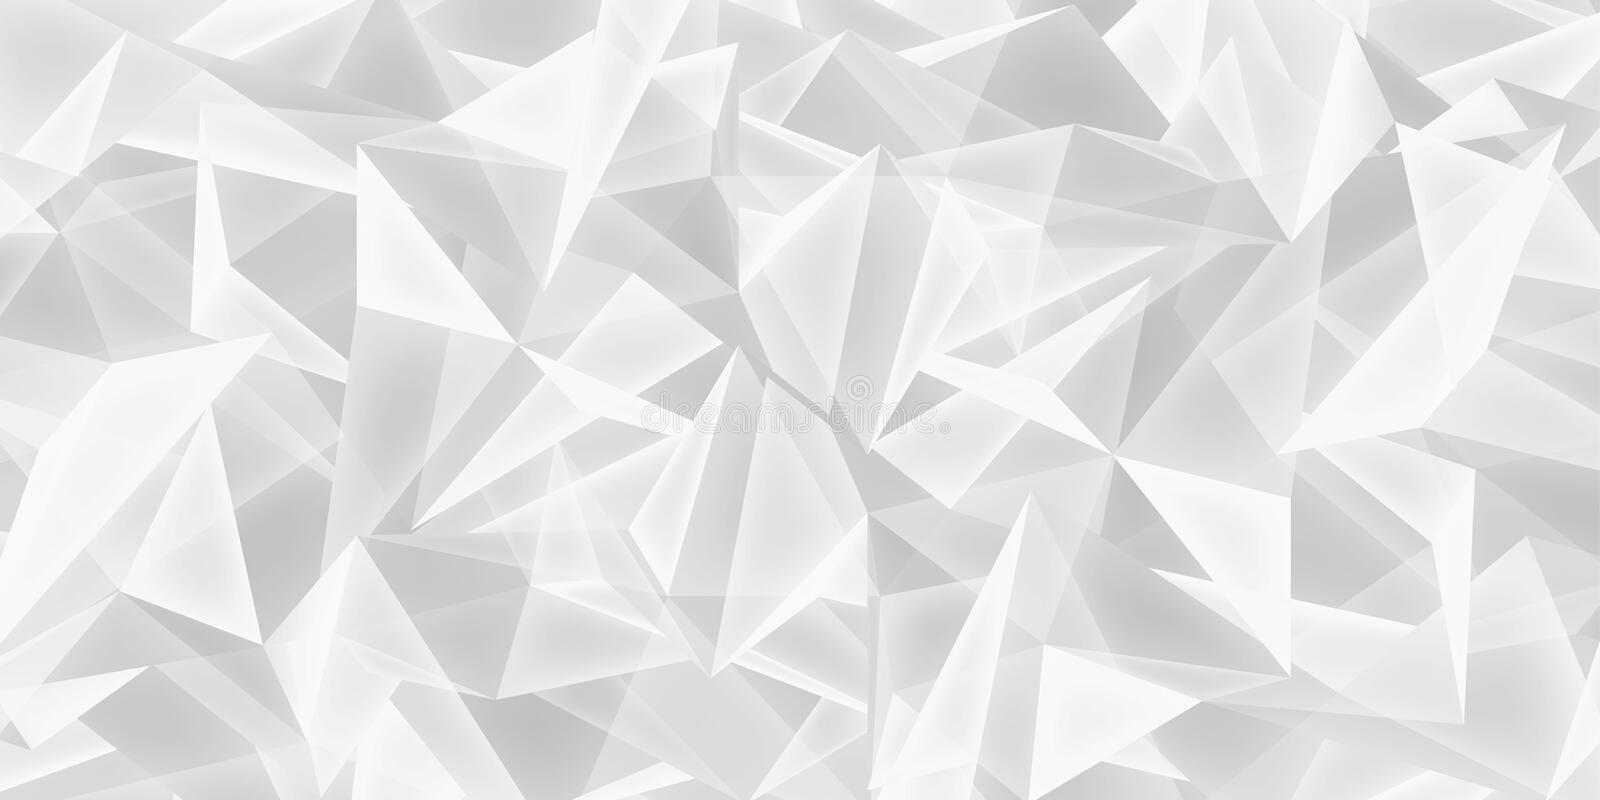 Abstract white background, glass crystals texture, many triangles light wallpaper, vector design royalty free illustration